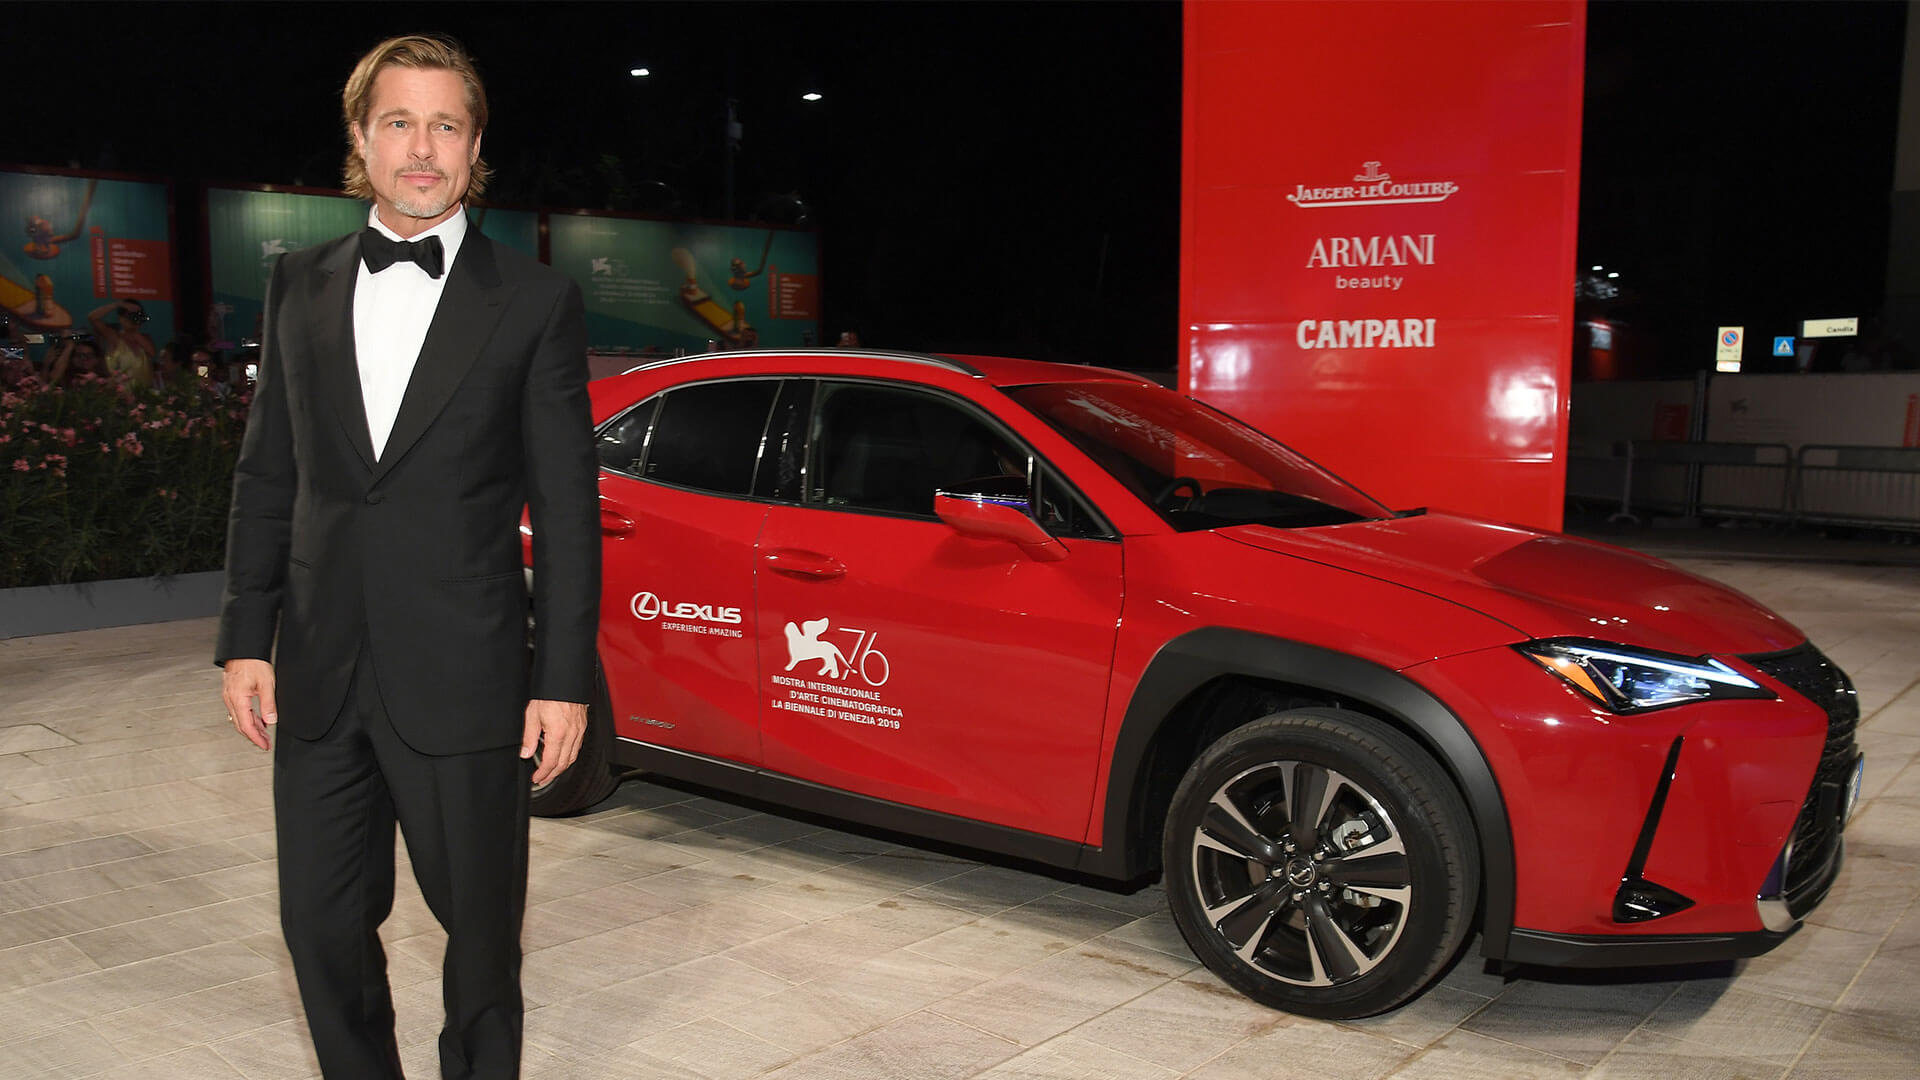 2020 lexus news venice film festival hero